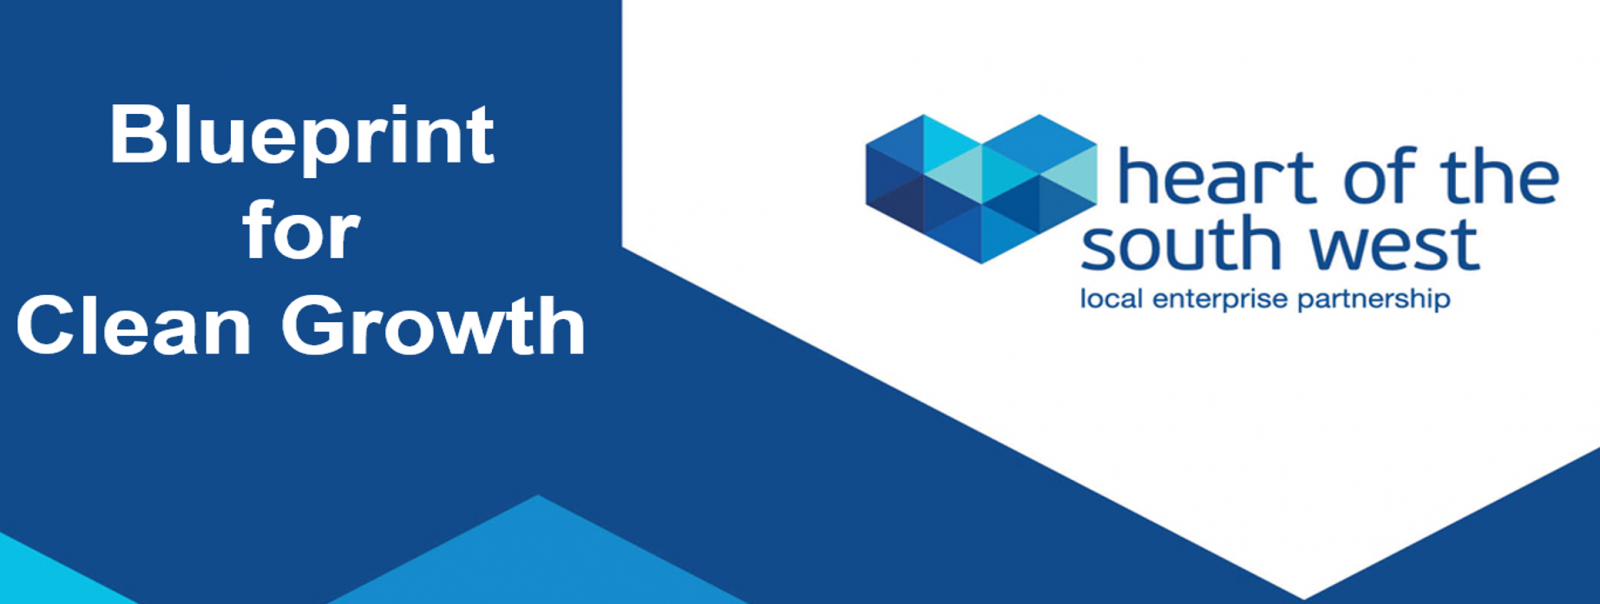 Heart of the south west LEP - Latest News | May 2021